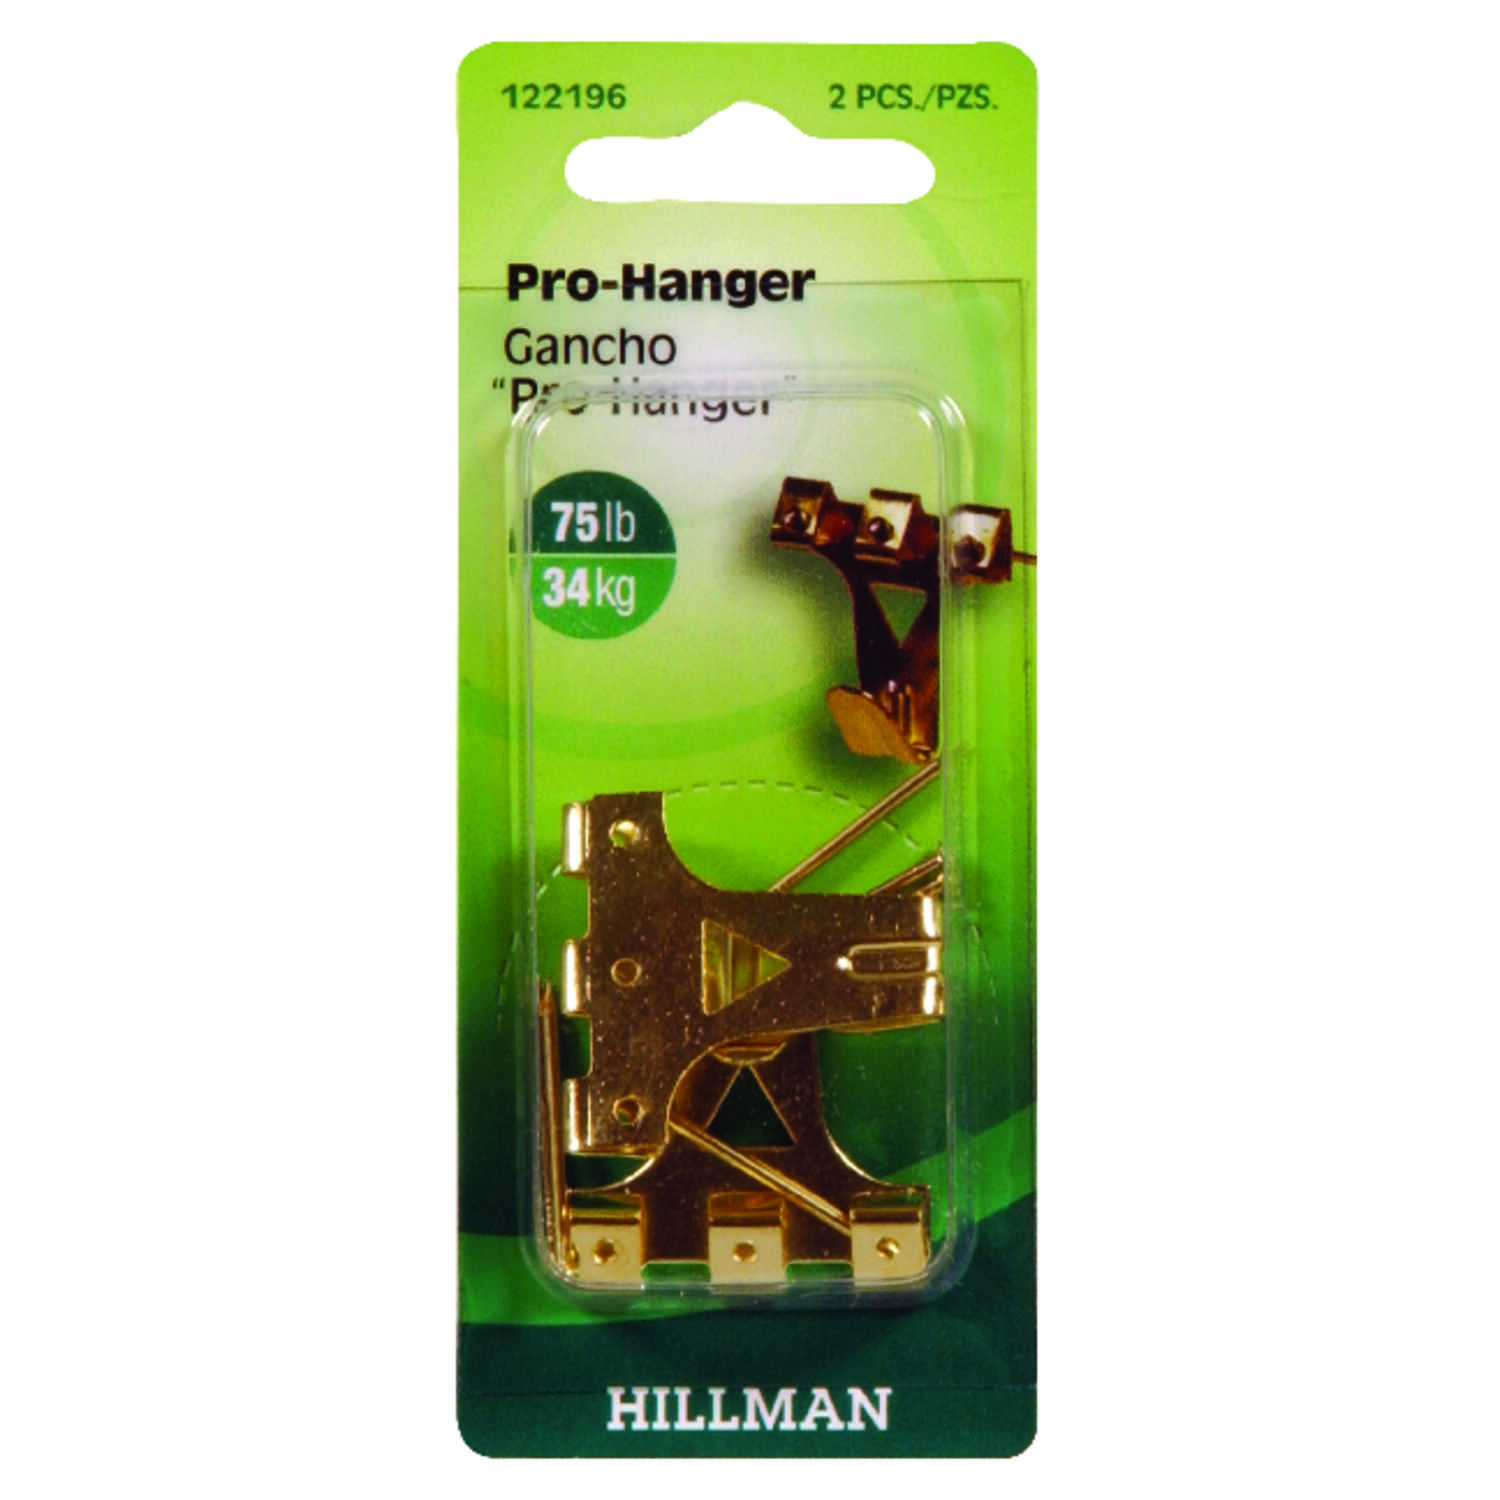 Hillman  AnchorWire  Brass-Plated  Gold  Professional  Picture Hanger  75 lb. 2 pk Brass